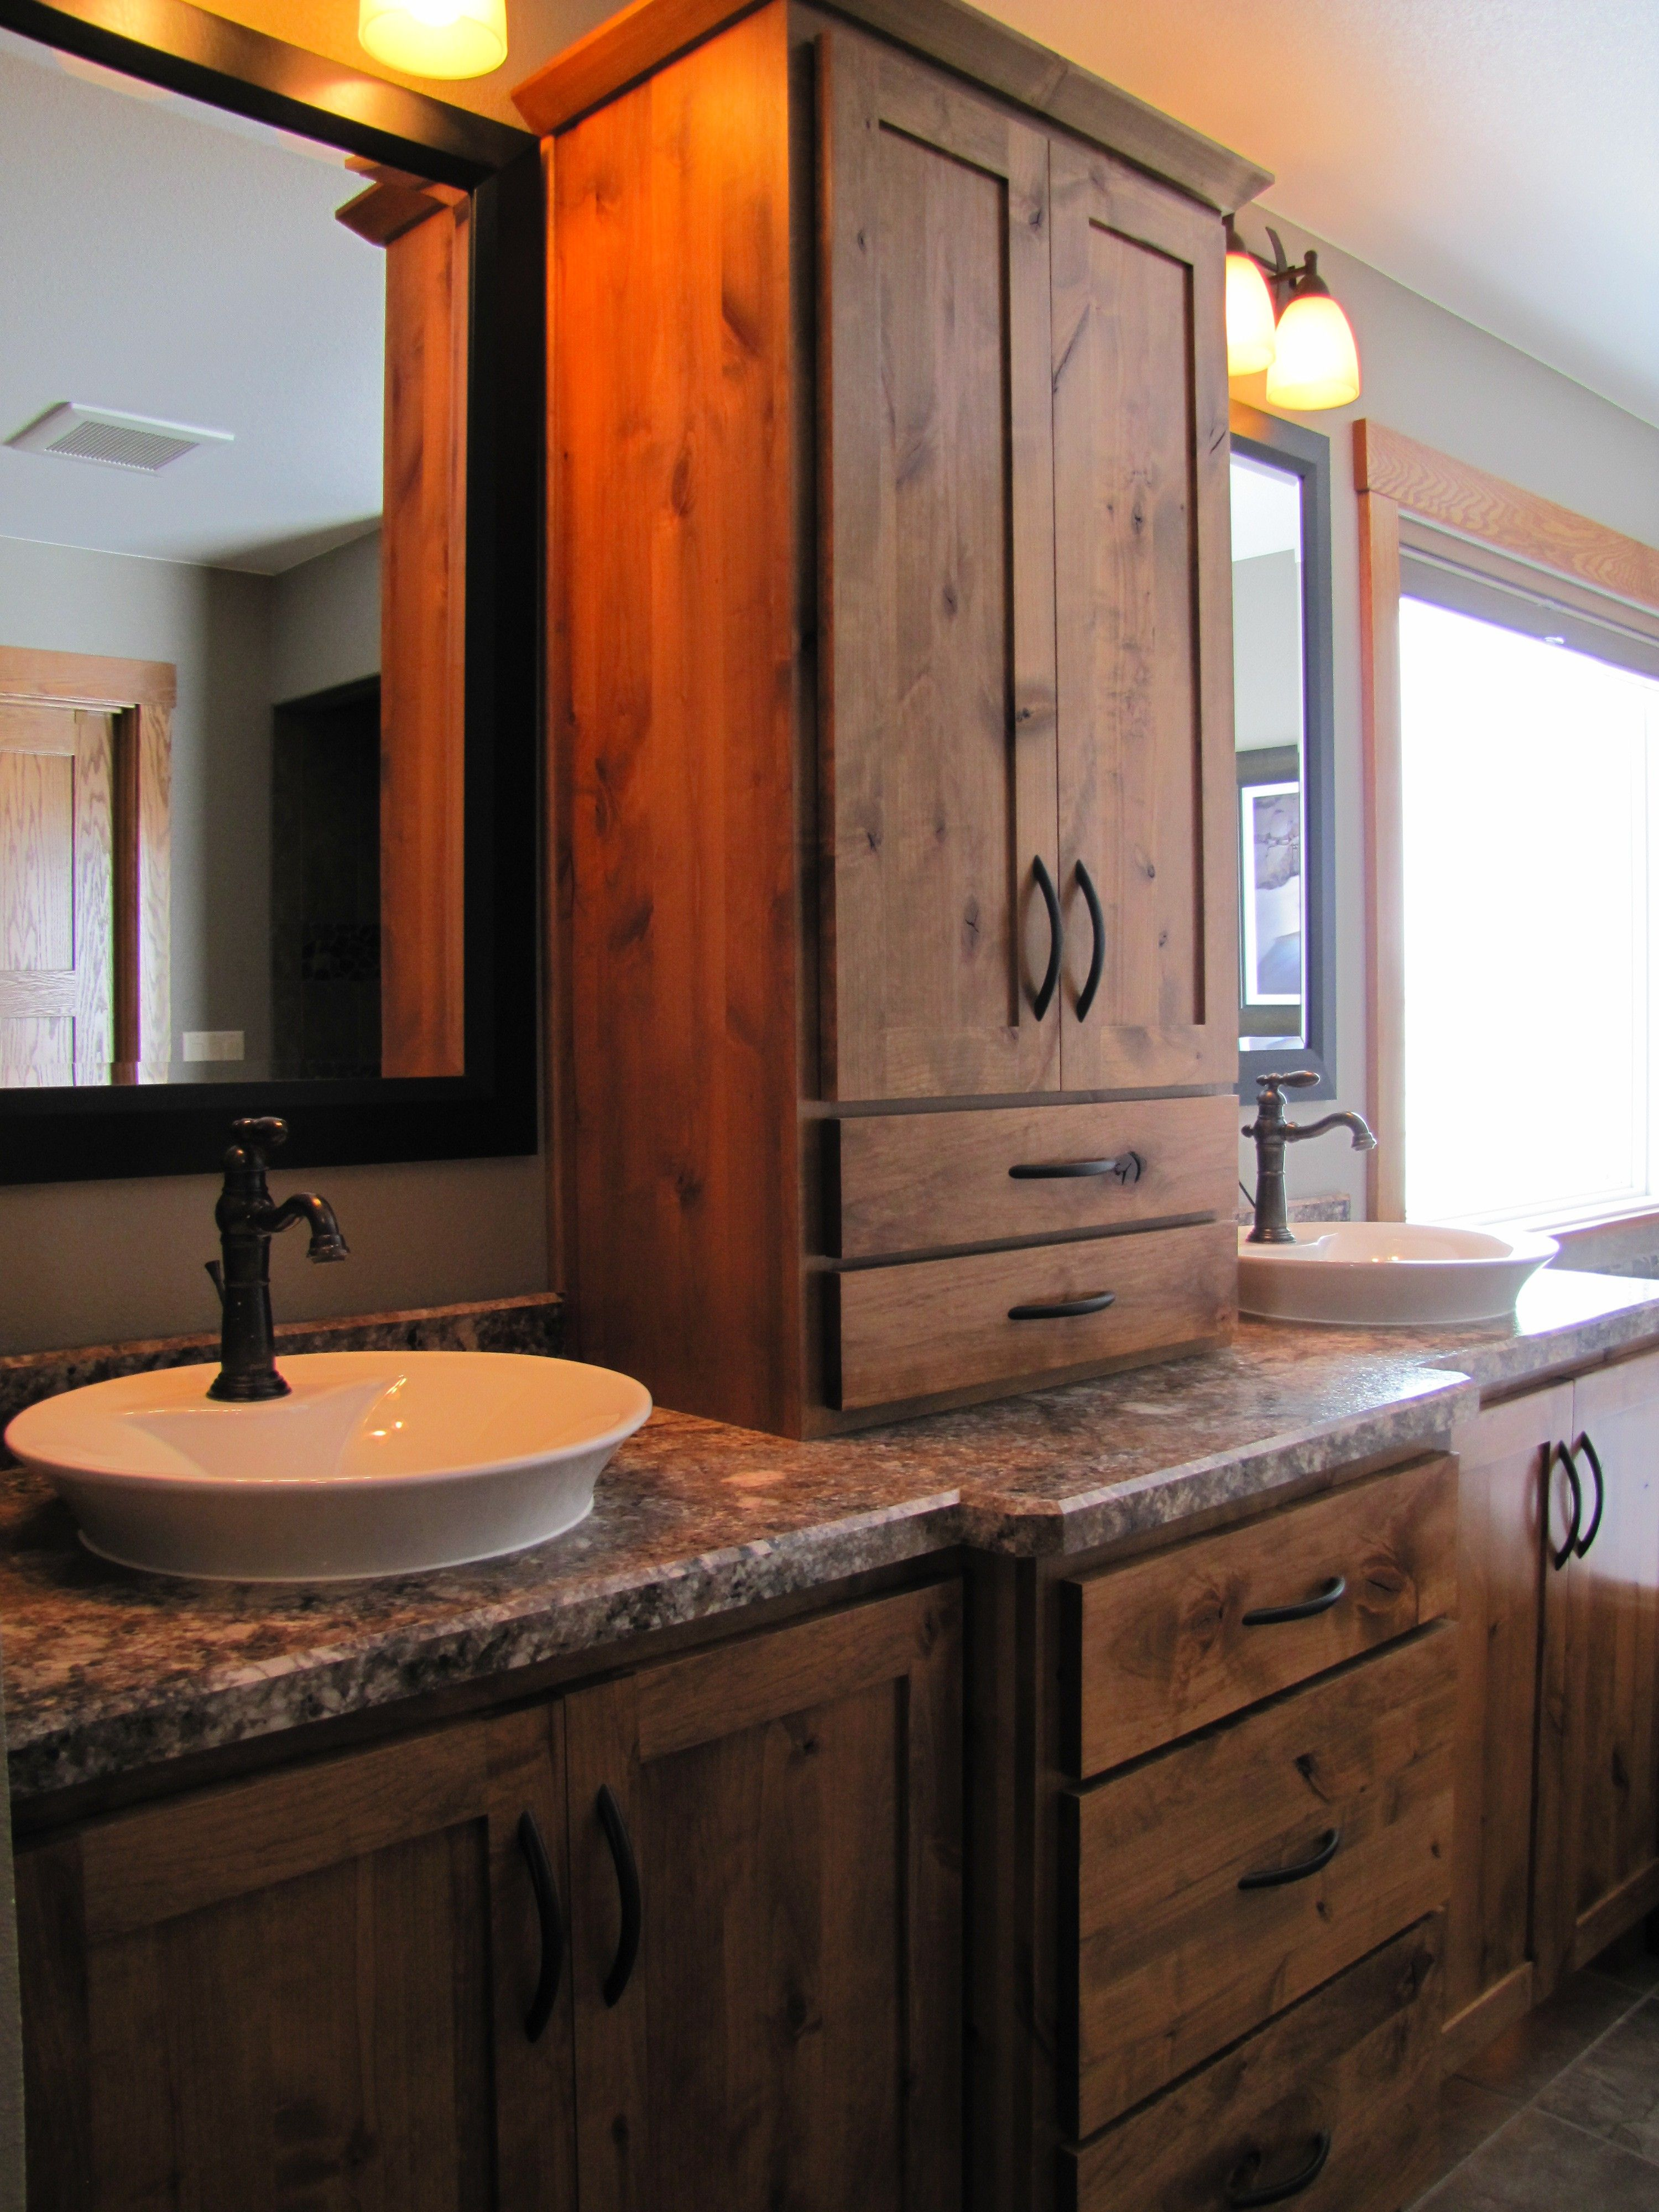 Custom built bathroom cabinets - Bathrooms Ideas Simple And Affordable Rustic Kitchen Cabinets Home